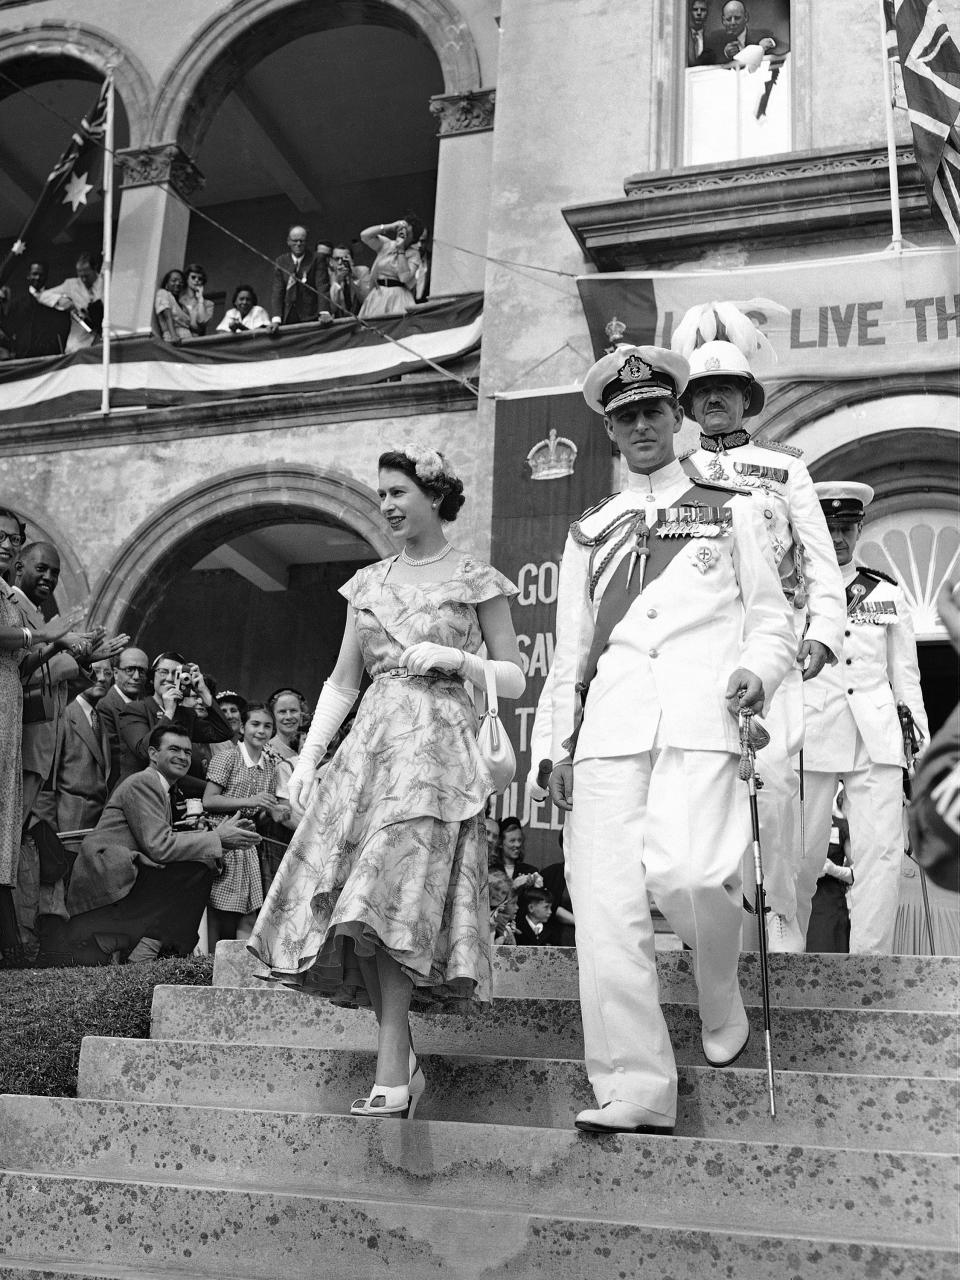 FILE - In this file photo dated Nov. 25, 1953, Britain's Queen Elizabeth II and the Duke of Edinburgh leaving the House Of Assembly after the Queen had addressed Bermuda's Colonial Parliament, in Hamilton, Bermuda. The Governor of Bermuda Lieutenant General Sir Alexander Hood follows the Queen and Duke down the steps. Prince Philip who died Friday April 9, 2021, aged 99, lived through a tumultuous century of war and upheavals, but he helped forge a period of stability for the British monarchy under his wife, Queen Elizabeth II. Philip helped create the Commonwealth of nations, with the queen at its head, in an attempt to bind Britain and its former colonies together on a more equal footing. (AP Photo, FILE)